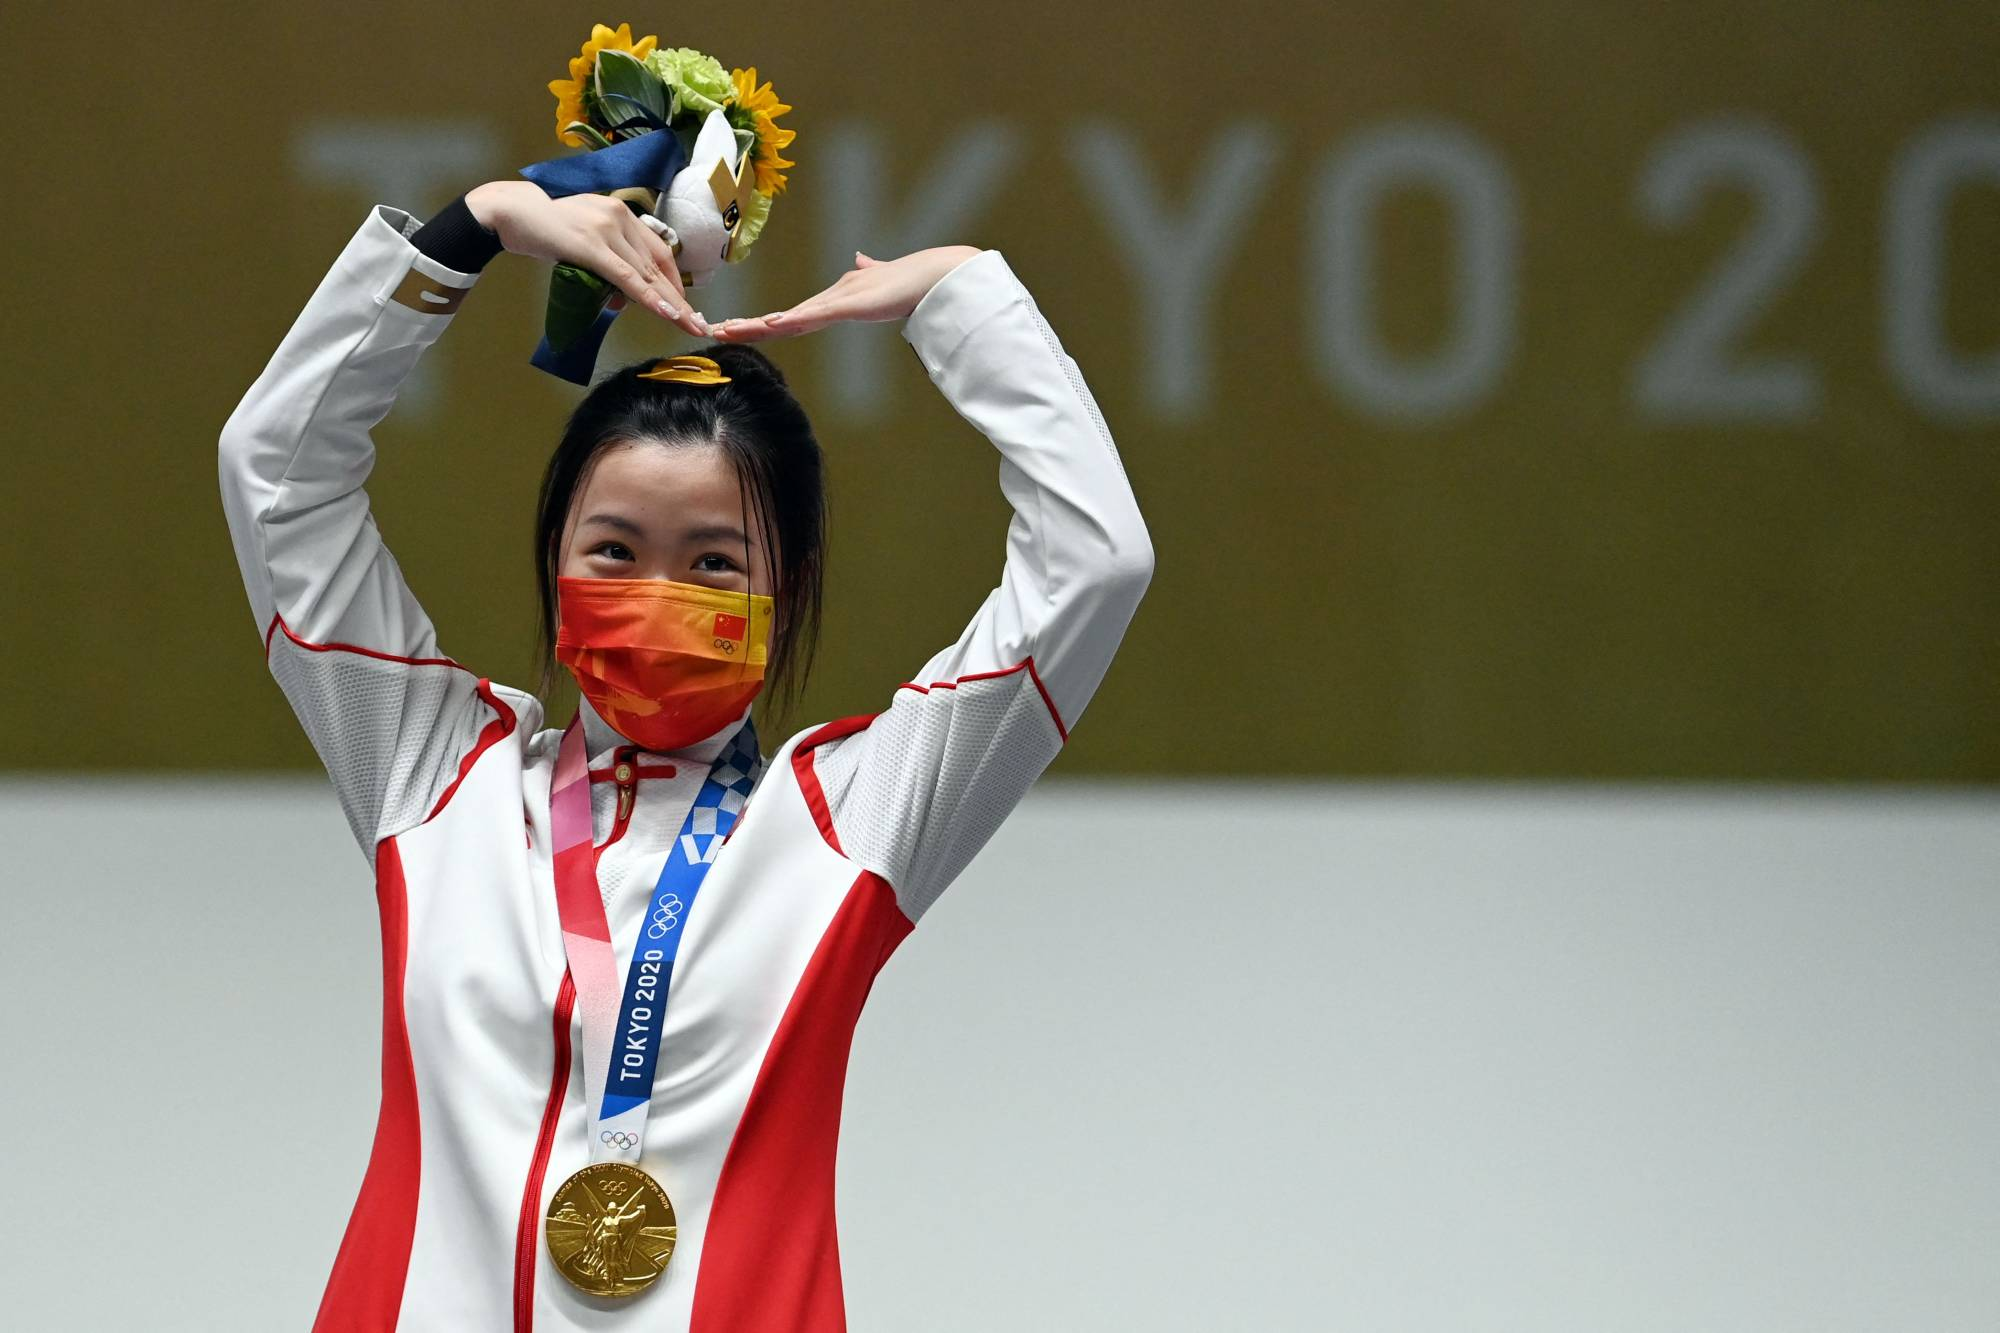 Gold medal winner China's Yang Qian celebrates on the podium after winning the women's 10 meter air rifle final on the first day of the Tokyo 2020 Games.  | AFP-JIJI